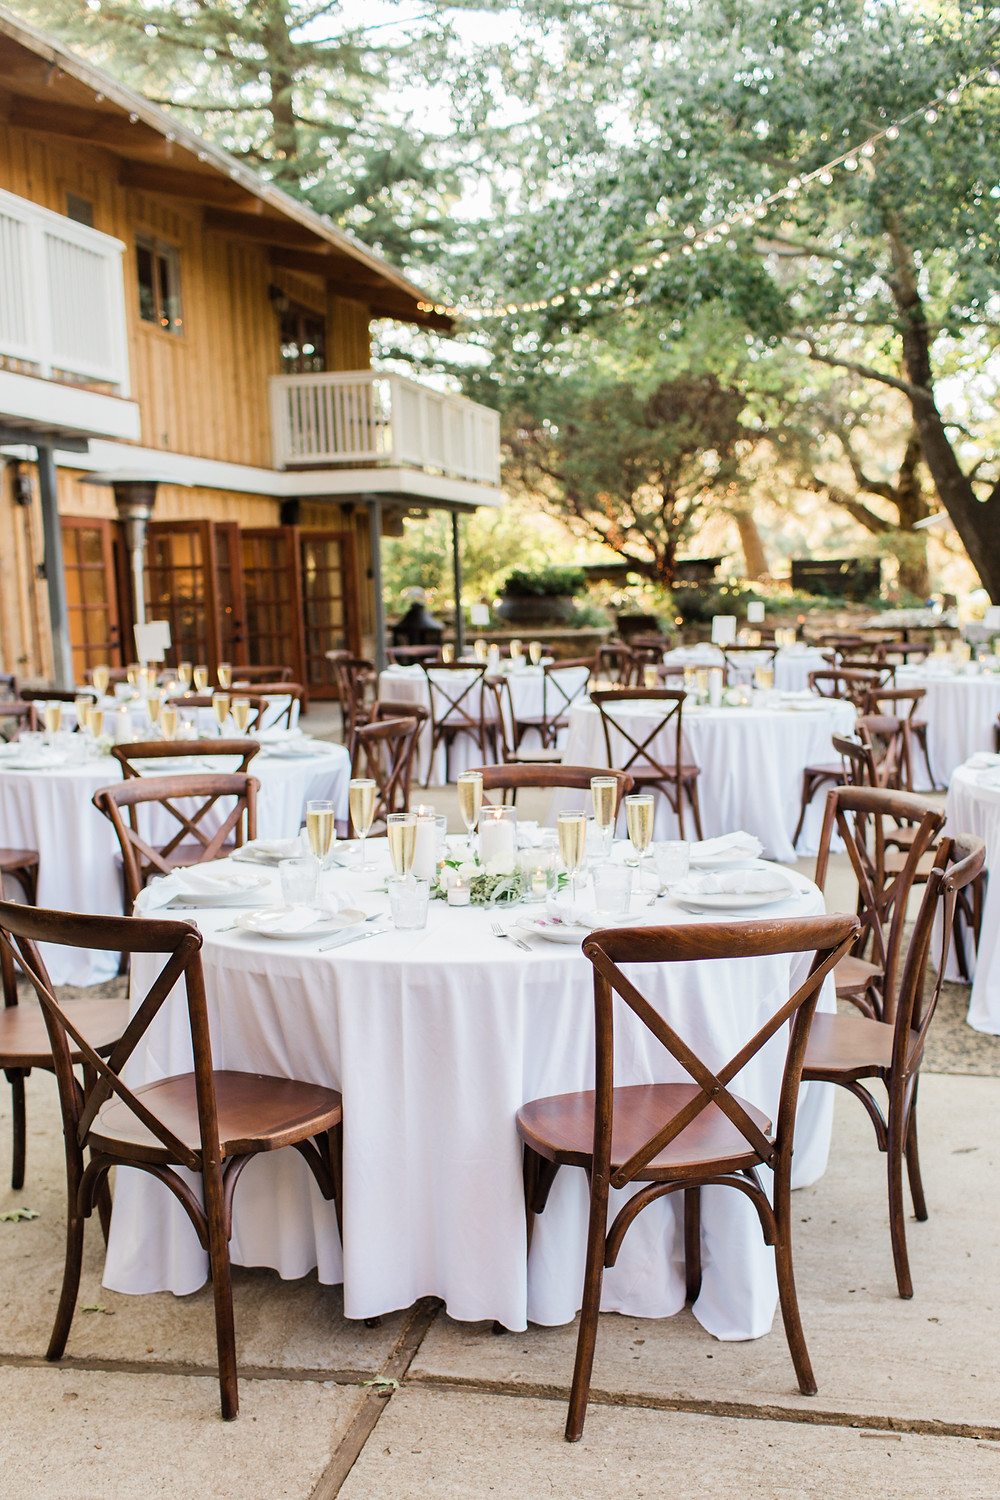 Reception space with bistro lights, white linens, and brown cross-back chairs